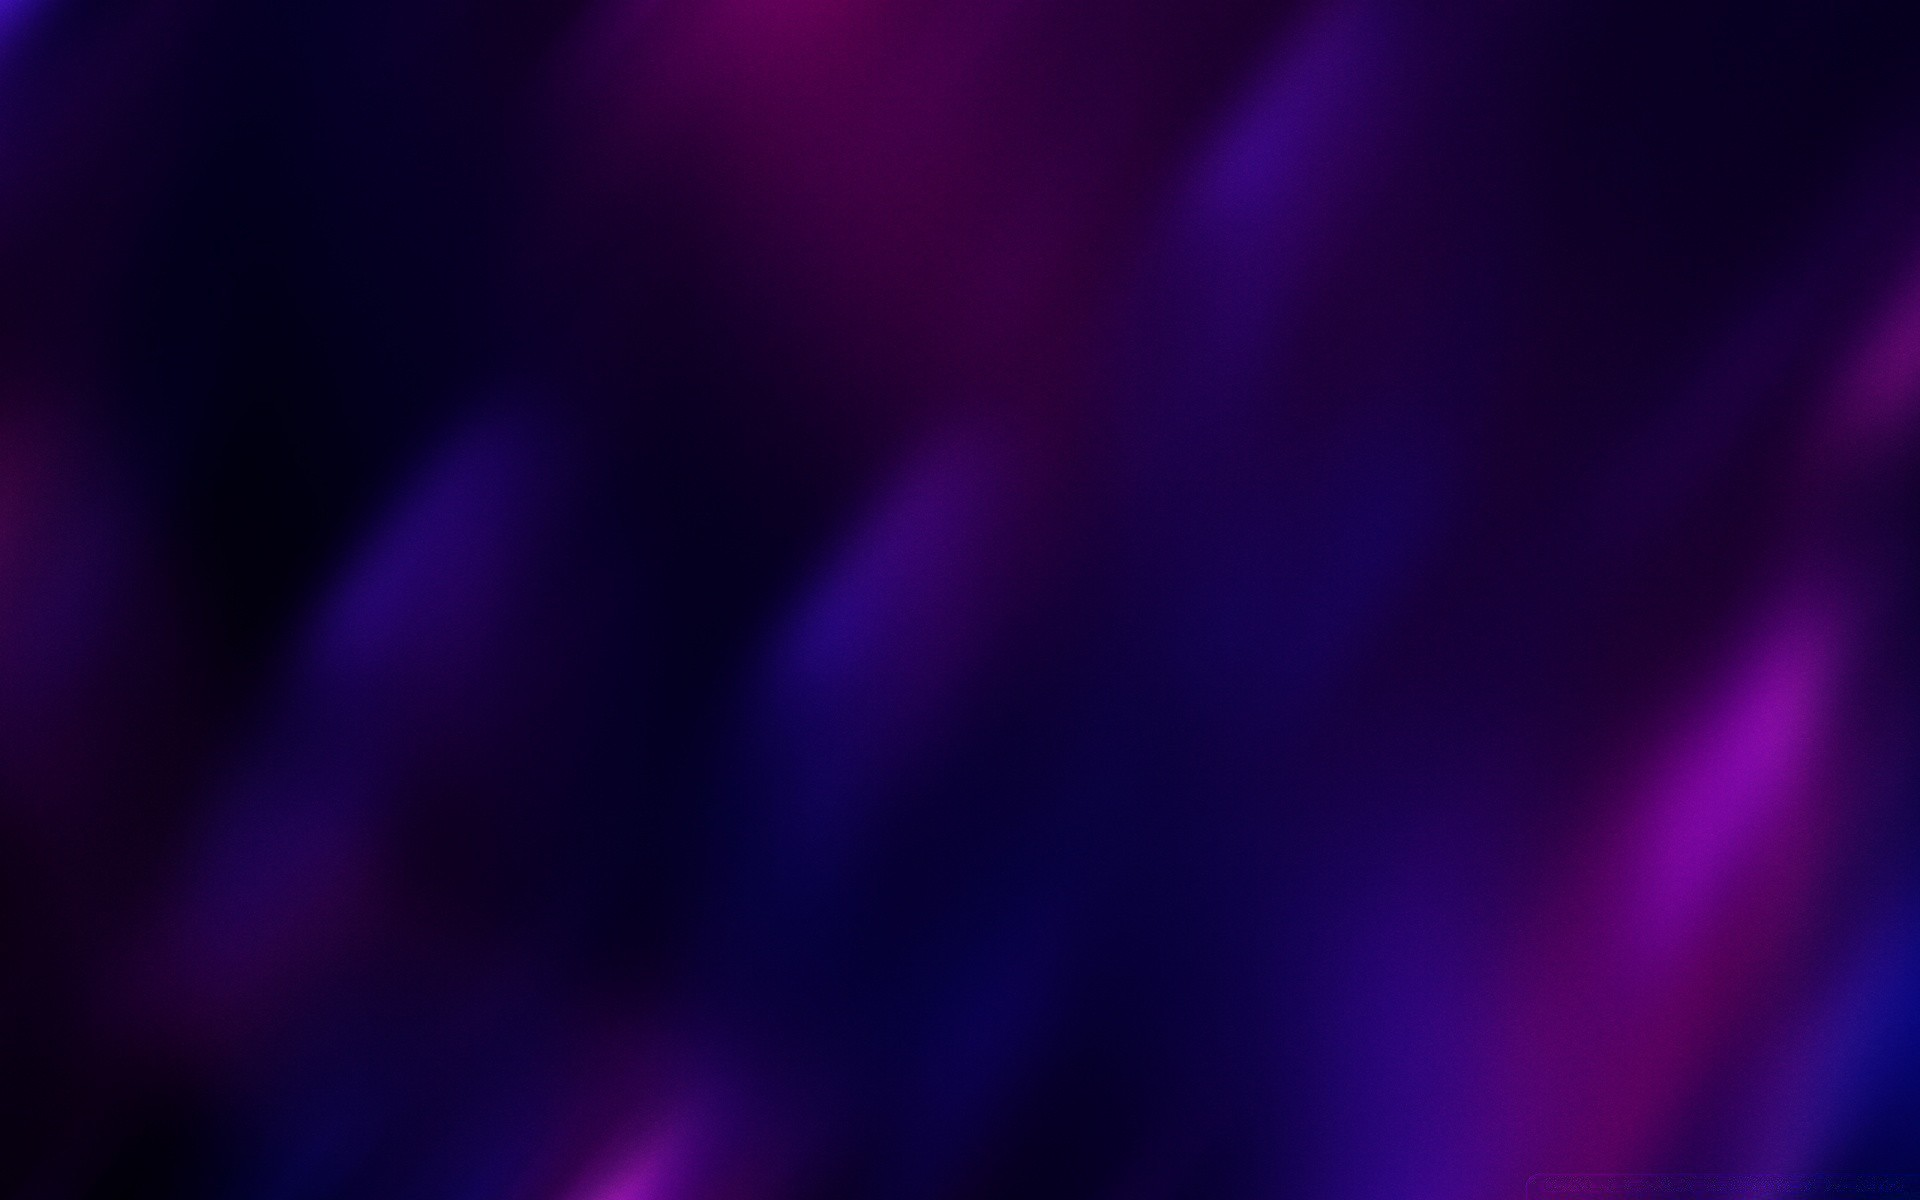 dark purple colors. android wallpapers for free.